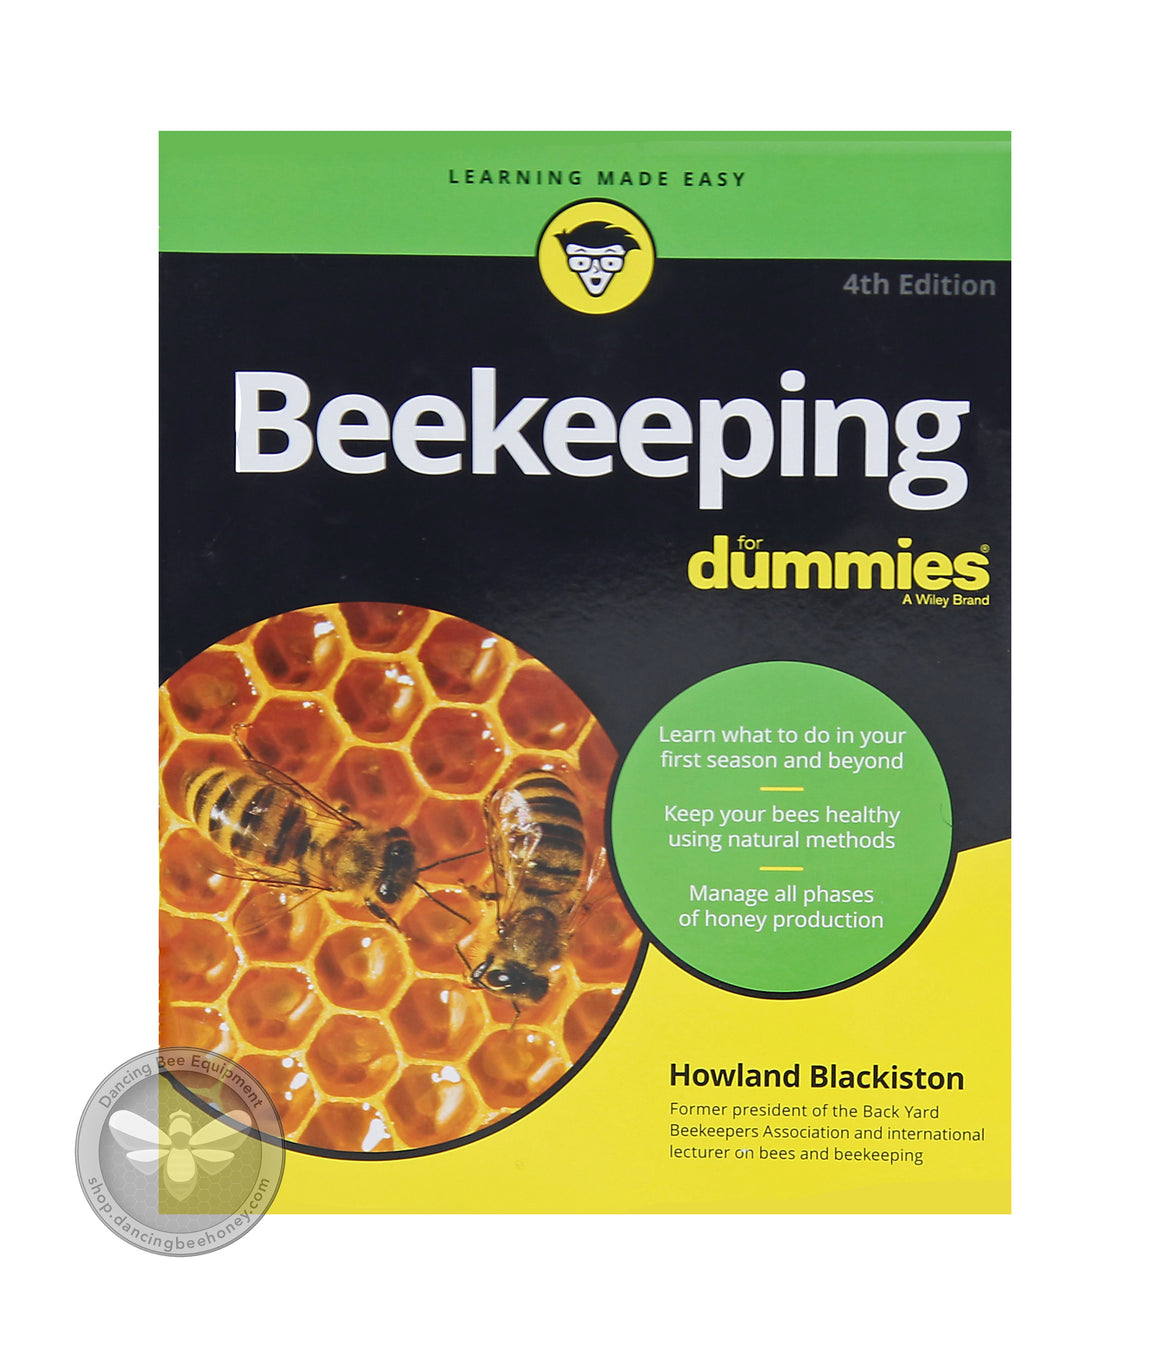 Beekeeping <br> For Dummies <br> 4th Edition